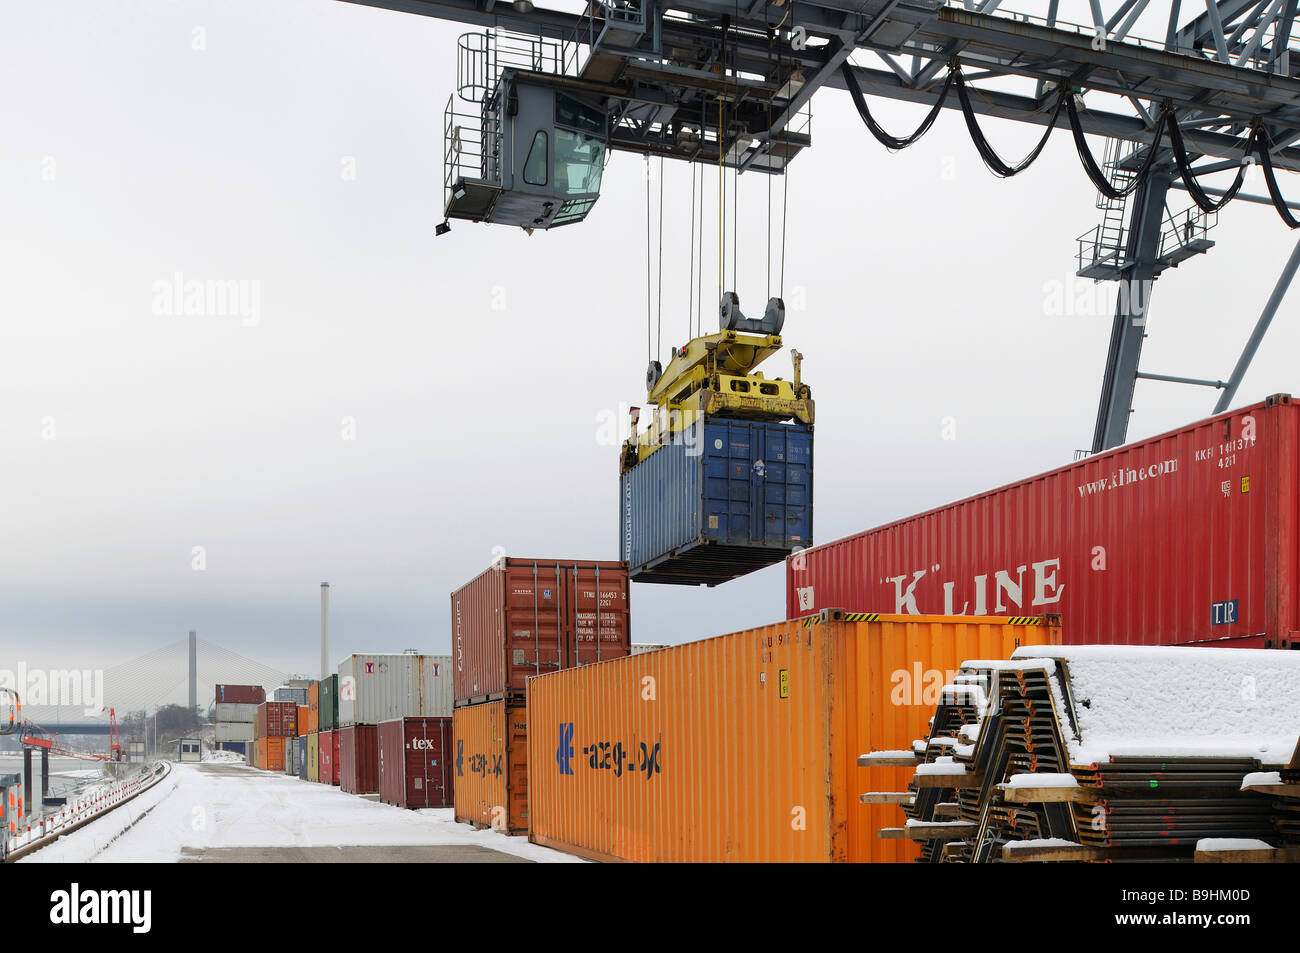 Container handling via portainer at Bonn Harbour, snow